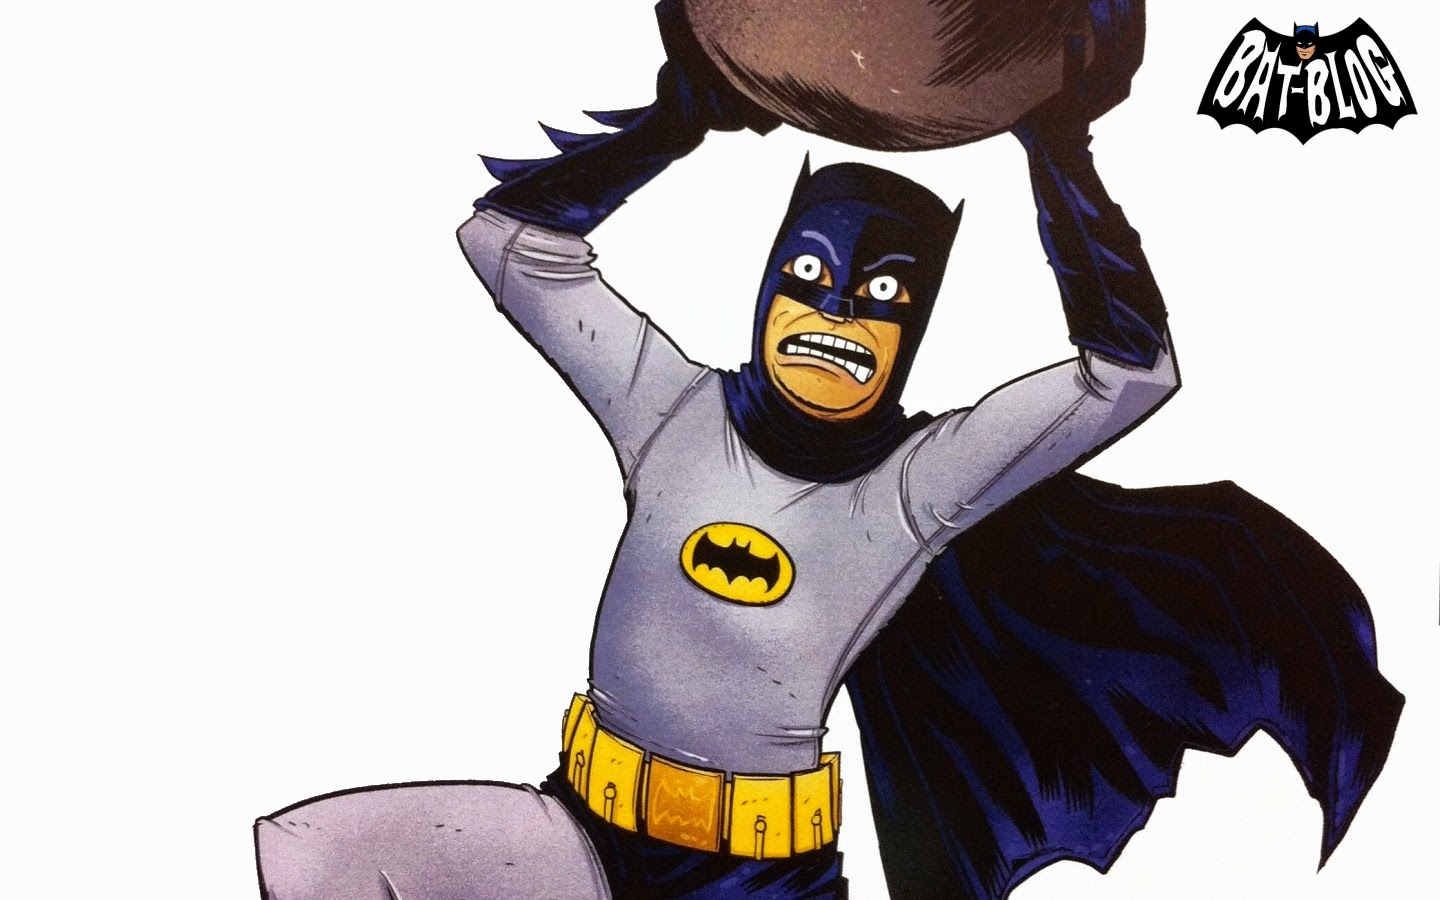 How to get rid of wallpaper - Batman Wallpapers Some Days You Just Can T Get Rid Of A Bomb